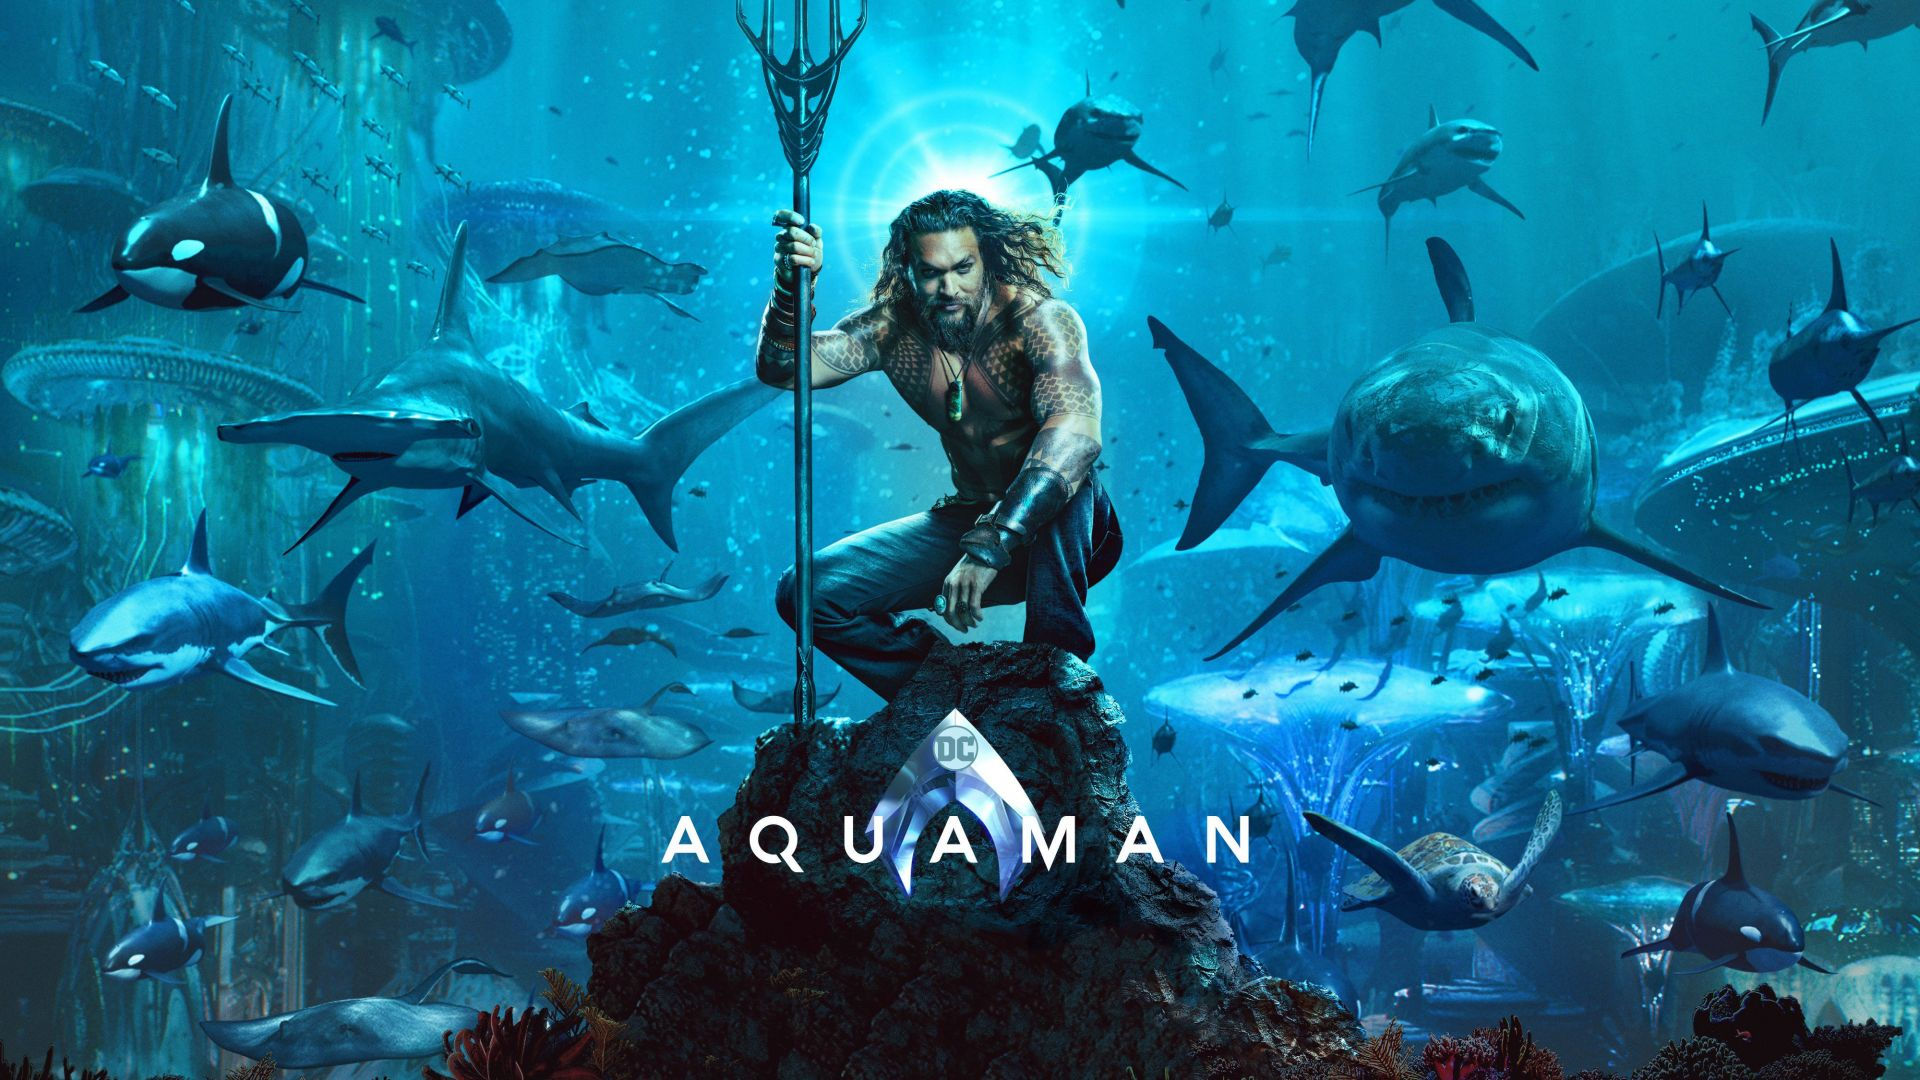 Aquaman Movie Wallpaper HD